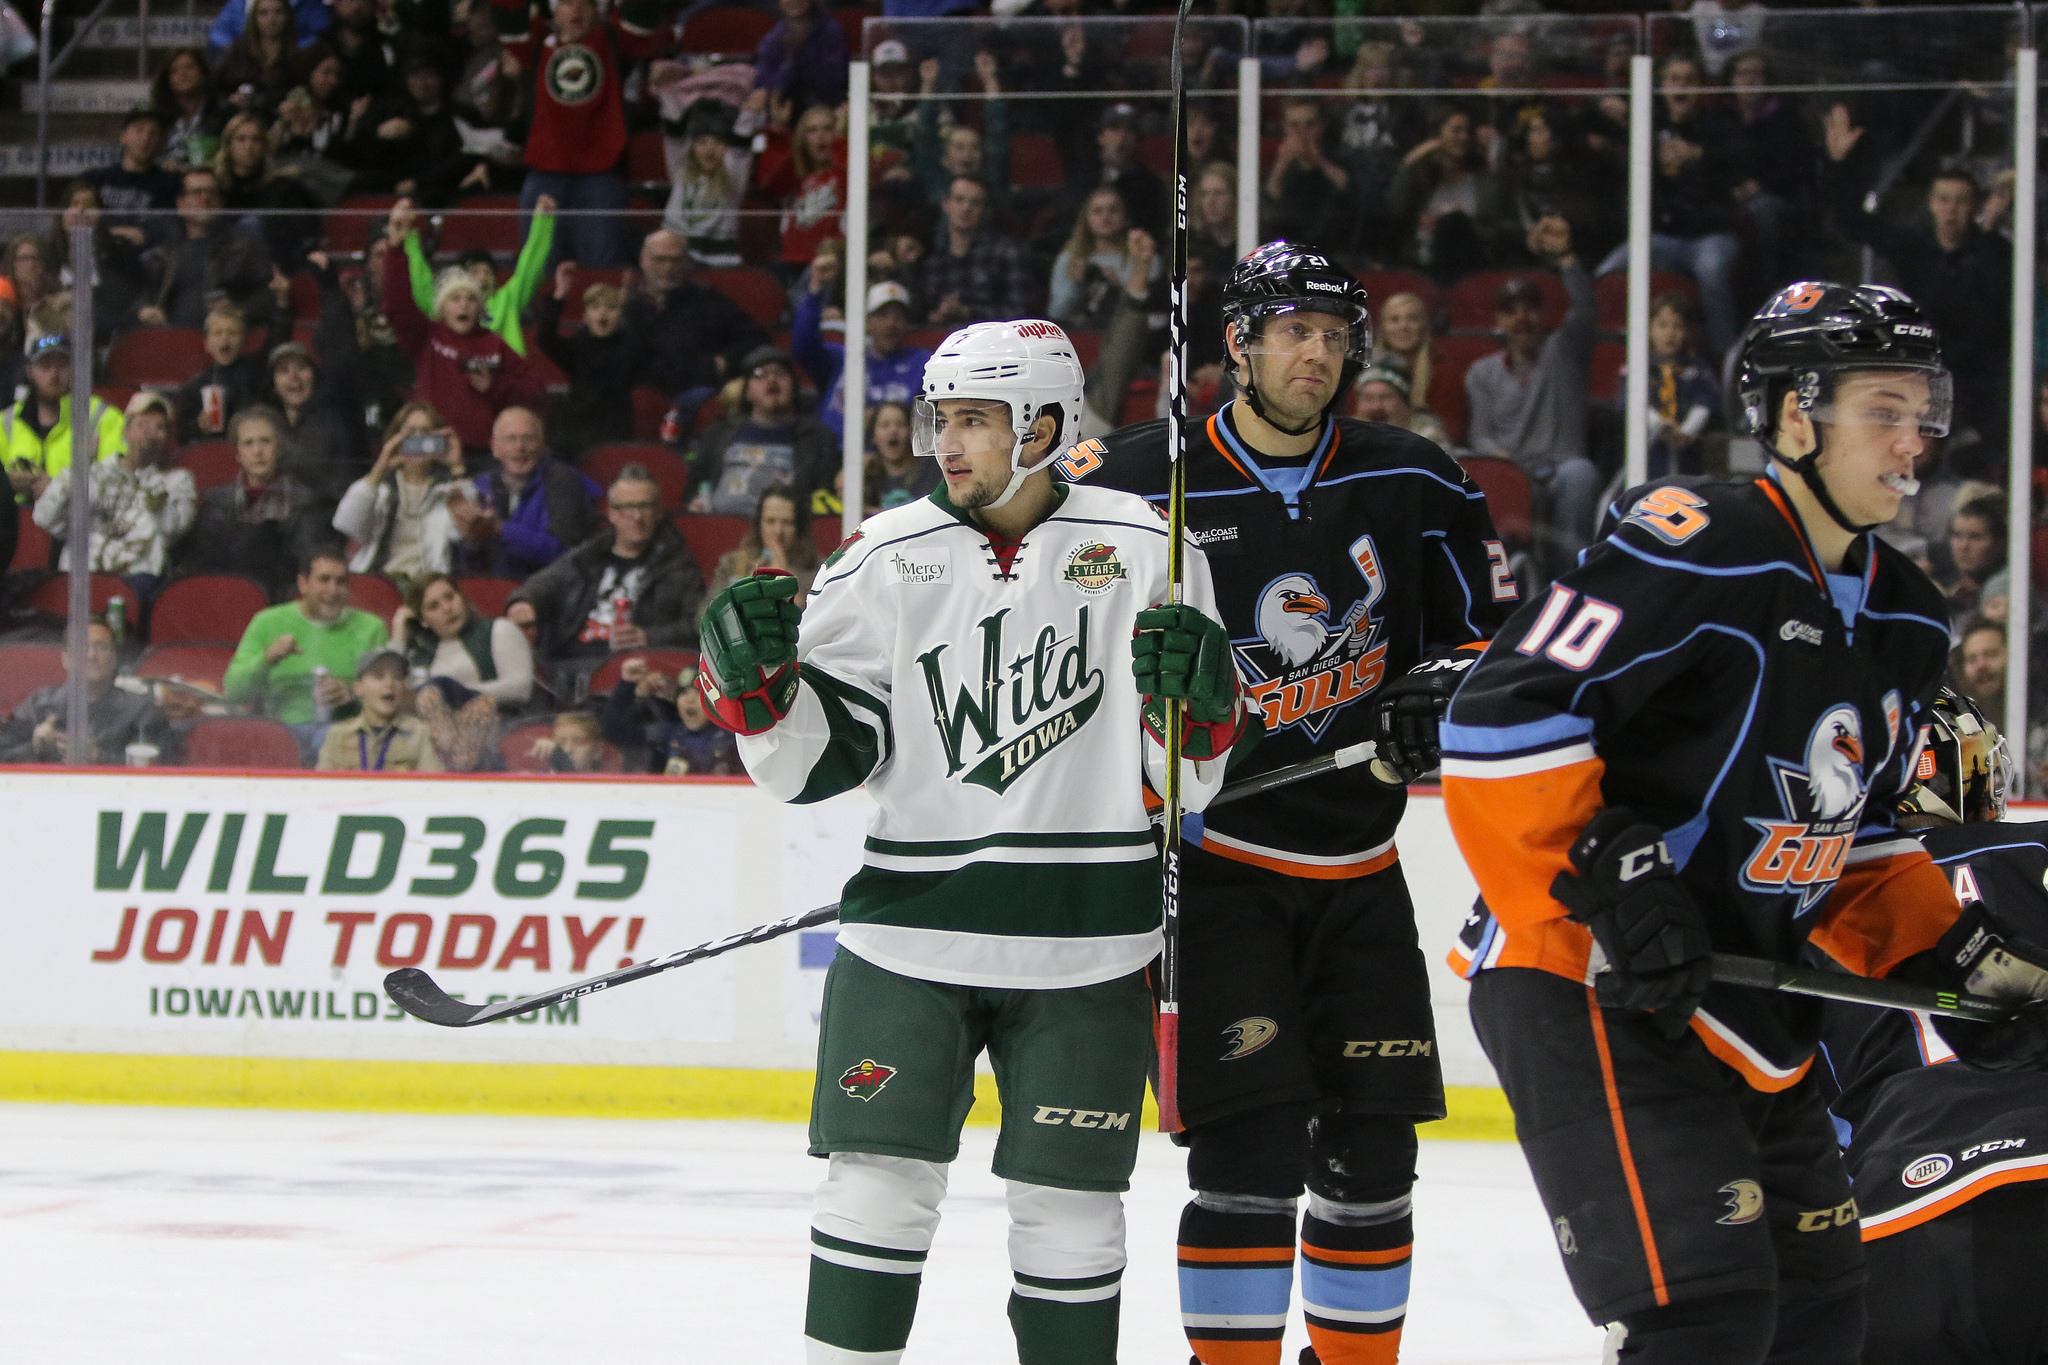 Iowa Wild vs. San Diego Gulls at Wells Fargo Arena